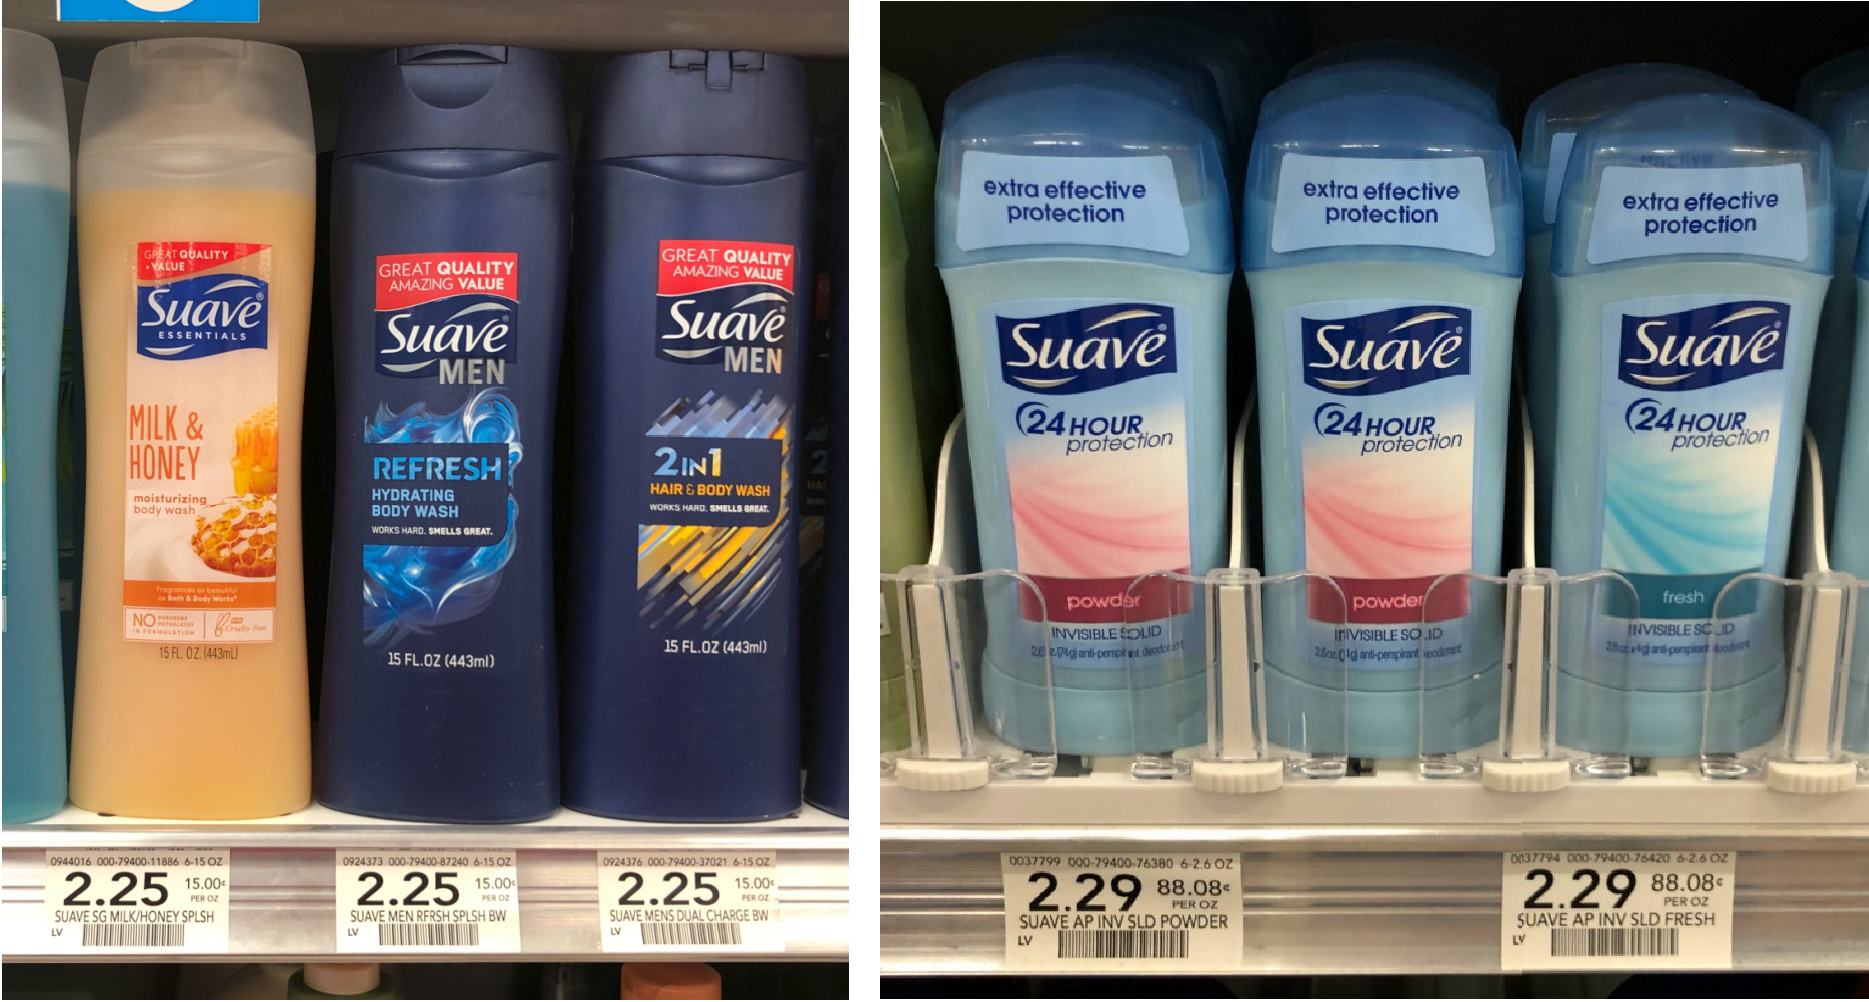 Get Suave Body Wash For Just $1.25 At Publix on I Heart Publix